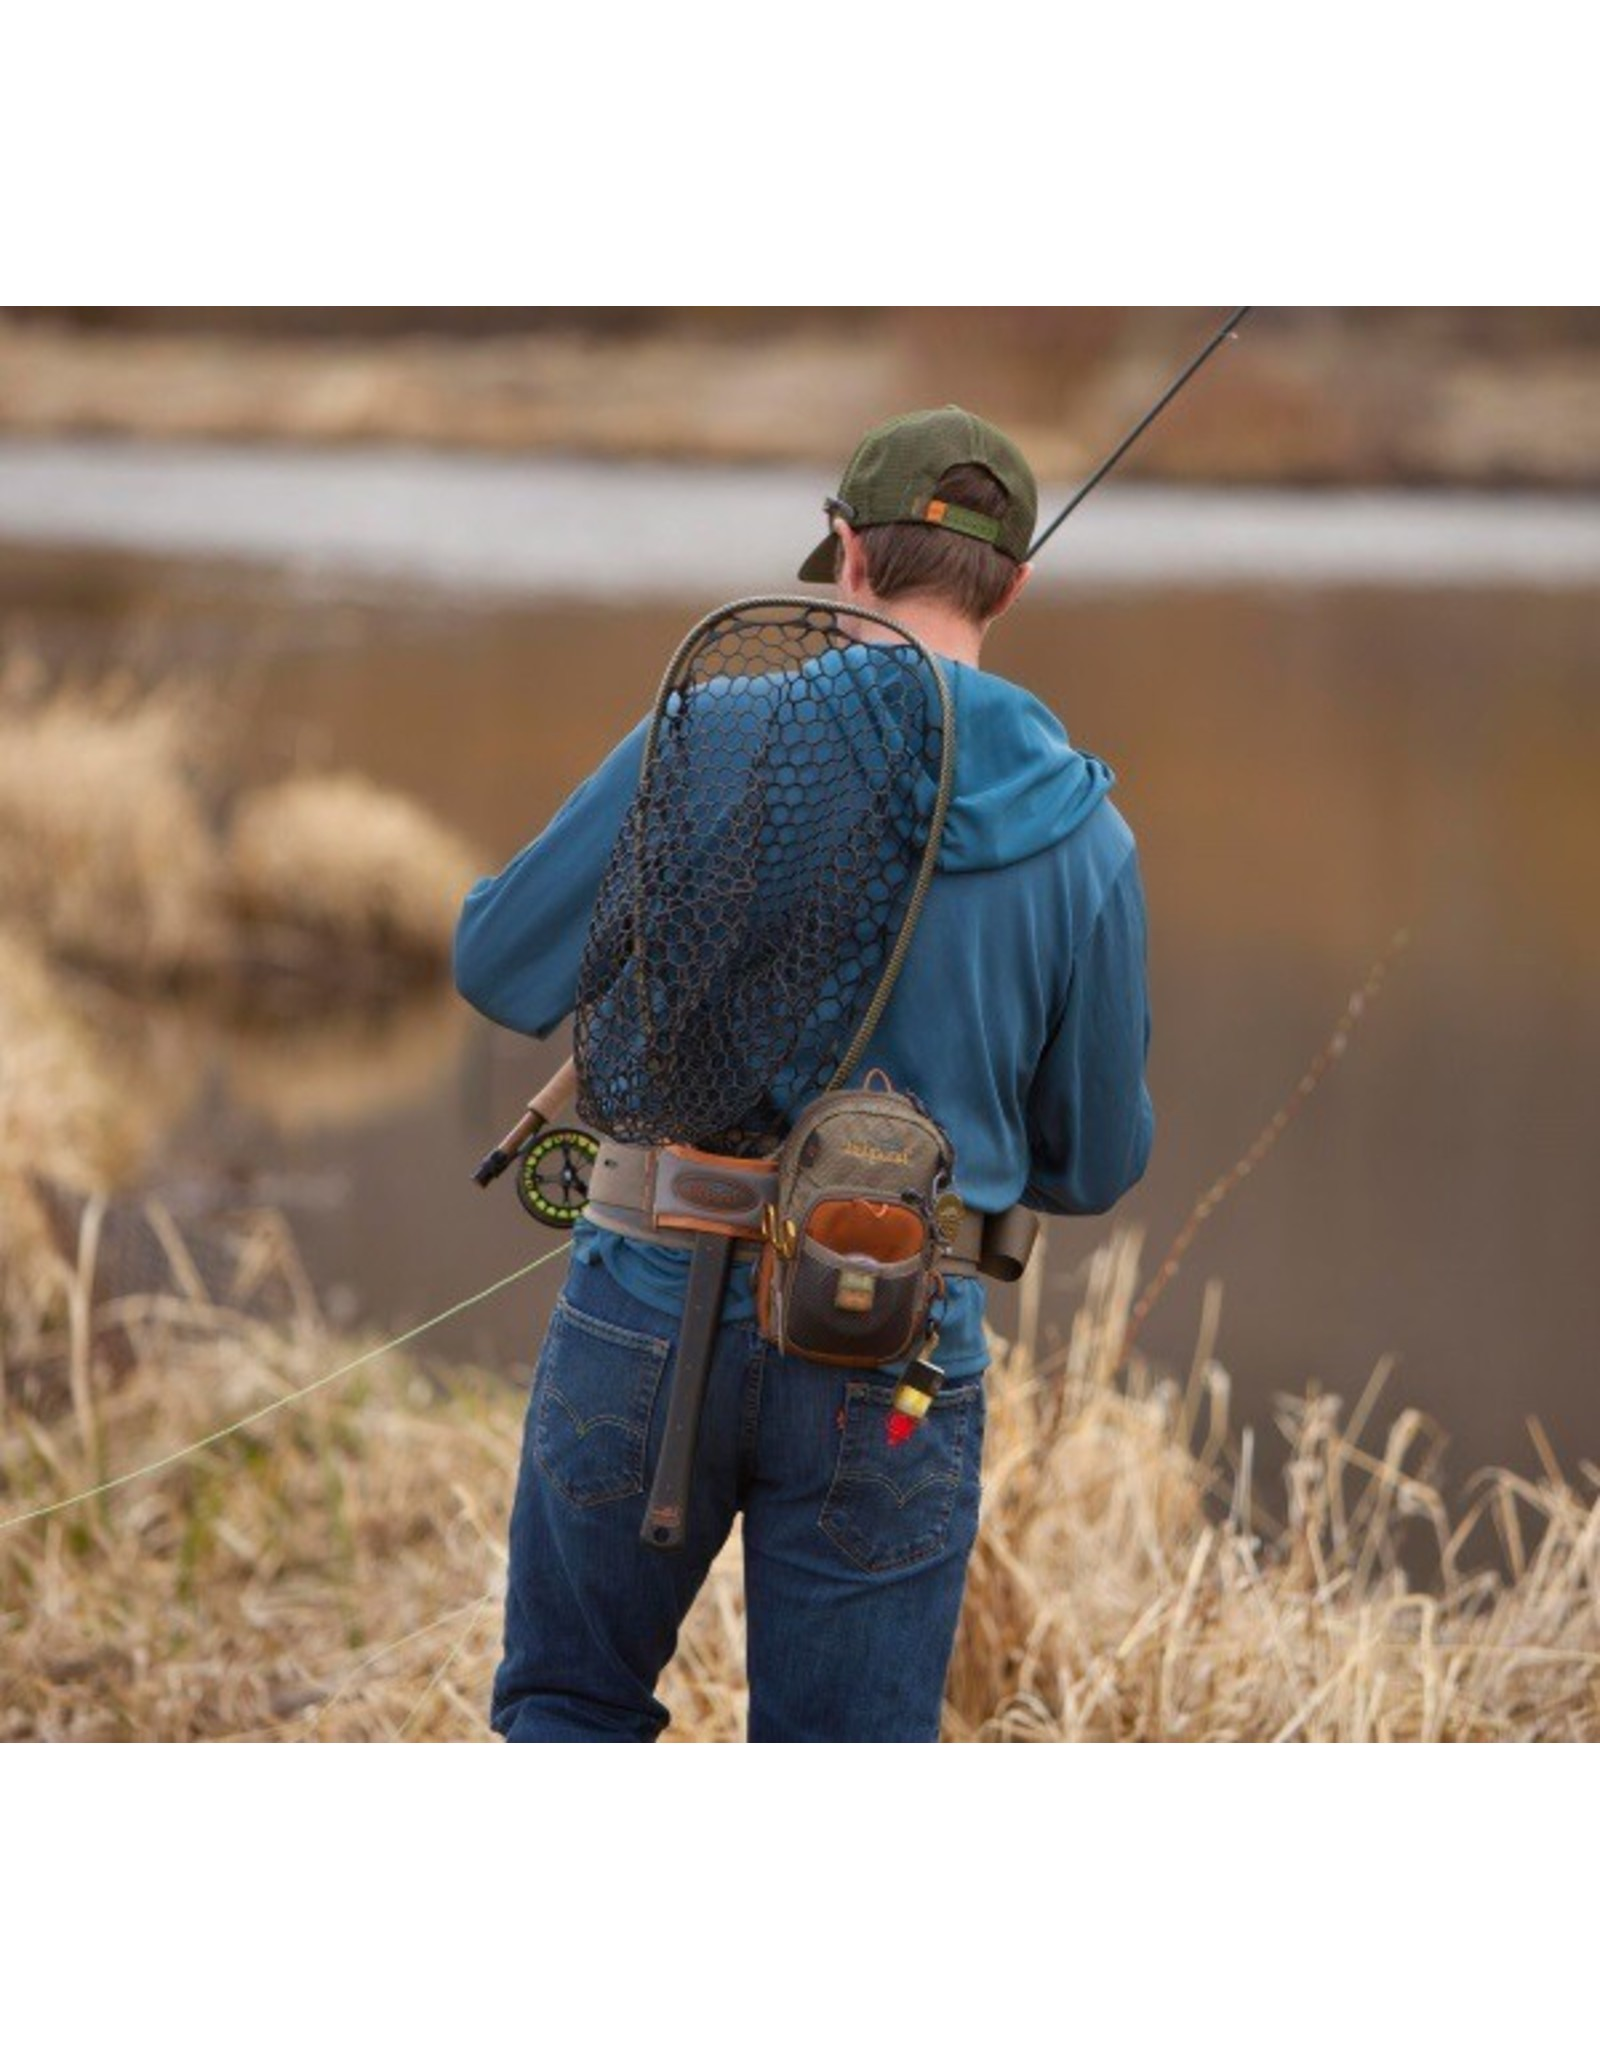 WHY JUST HAVE A BELT TO SECURE YOUR WADERS AND SUPPORT YOUR BACK?